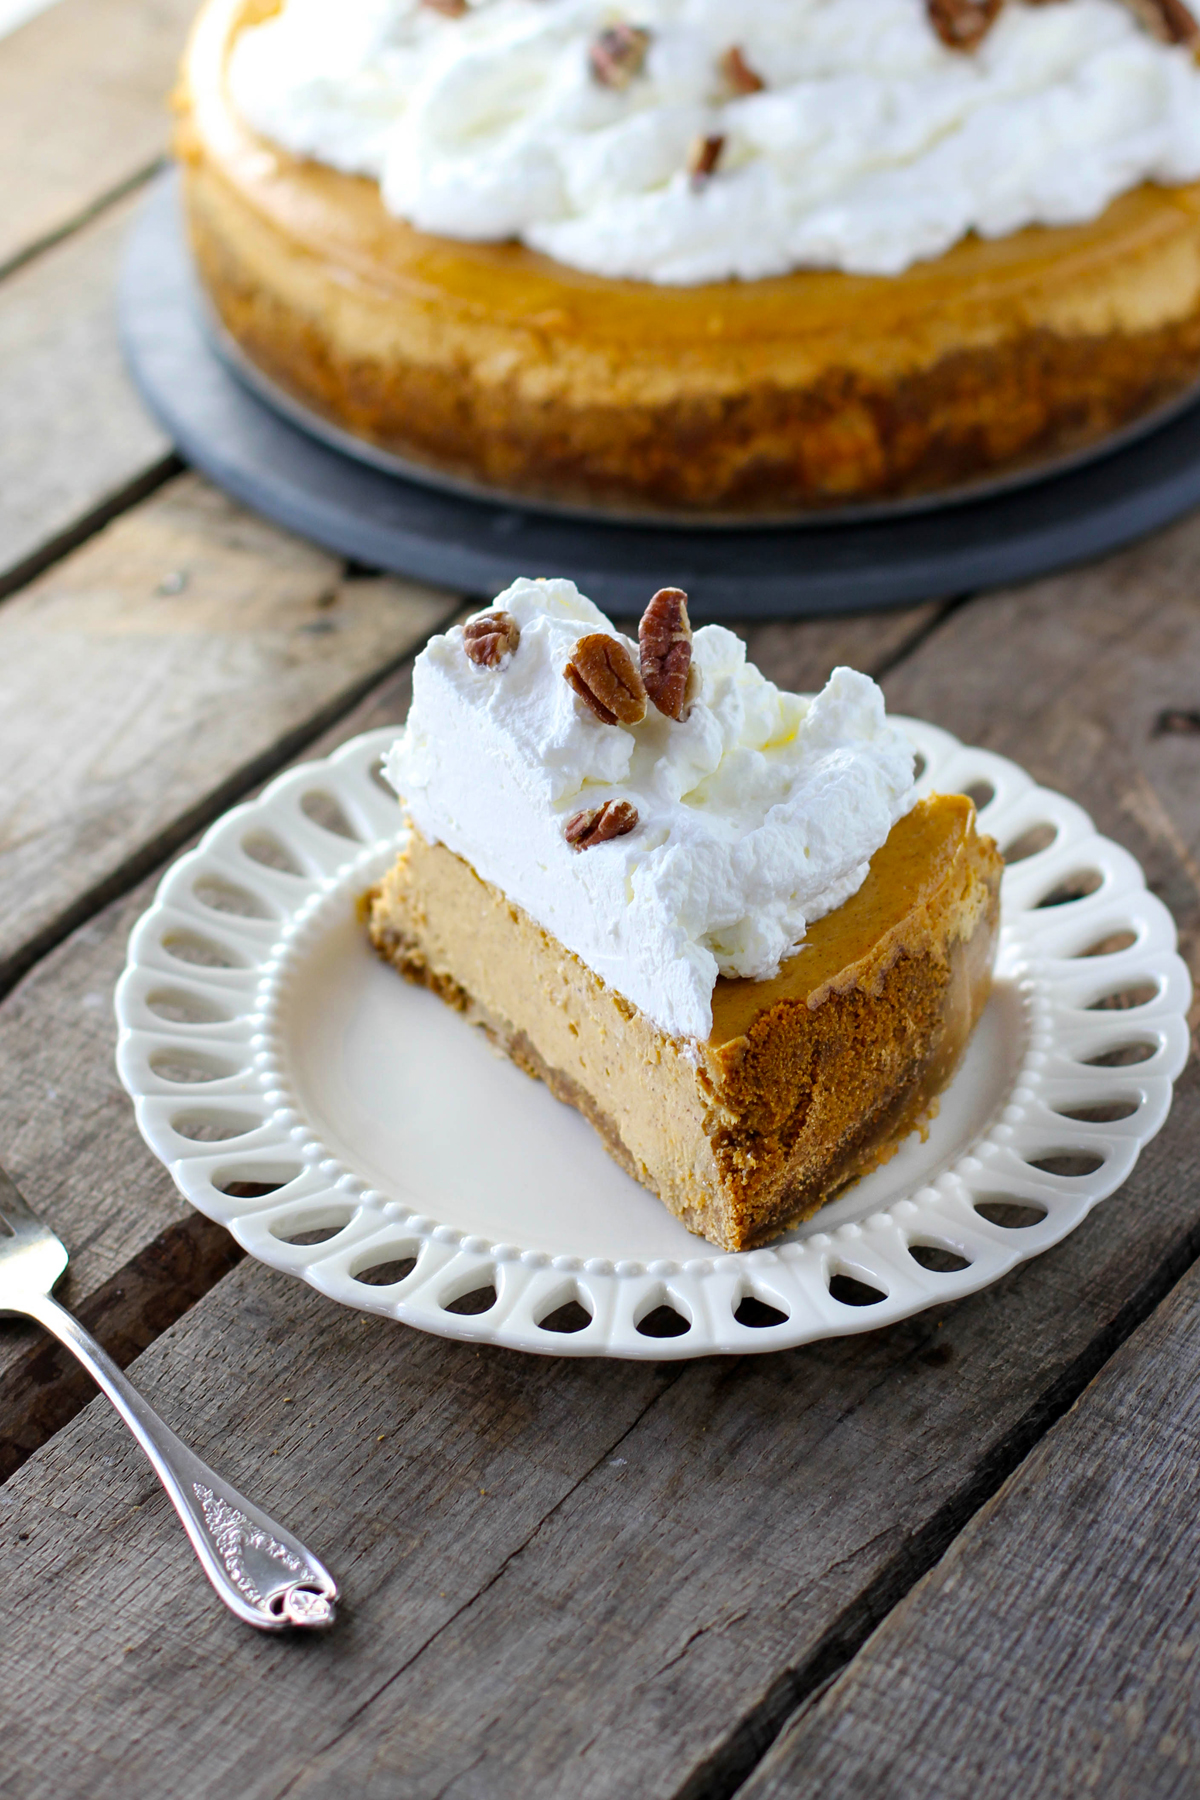 It's Cheesecake Factory Pumpkin Cheesecake Time! - DailyScene.com |